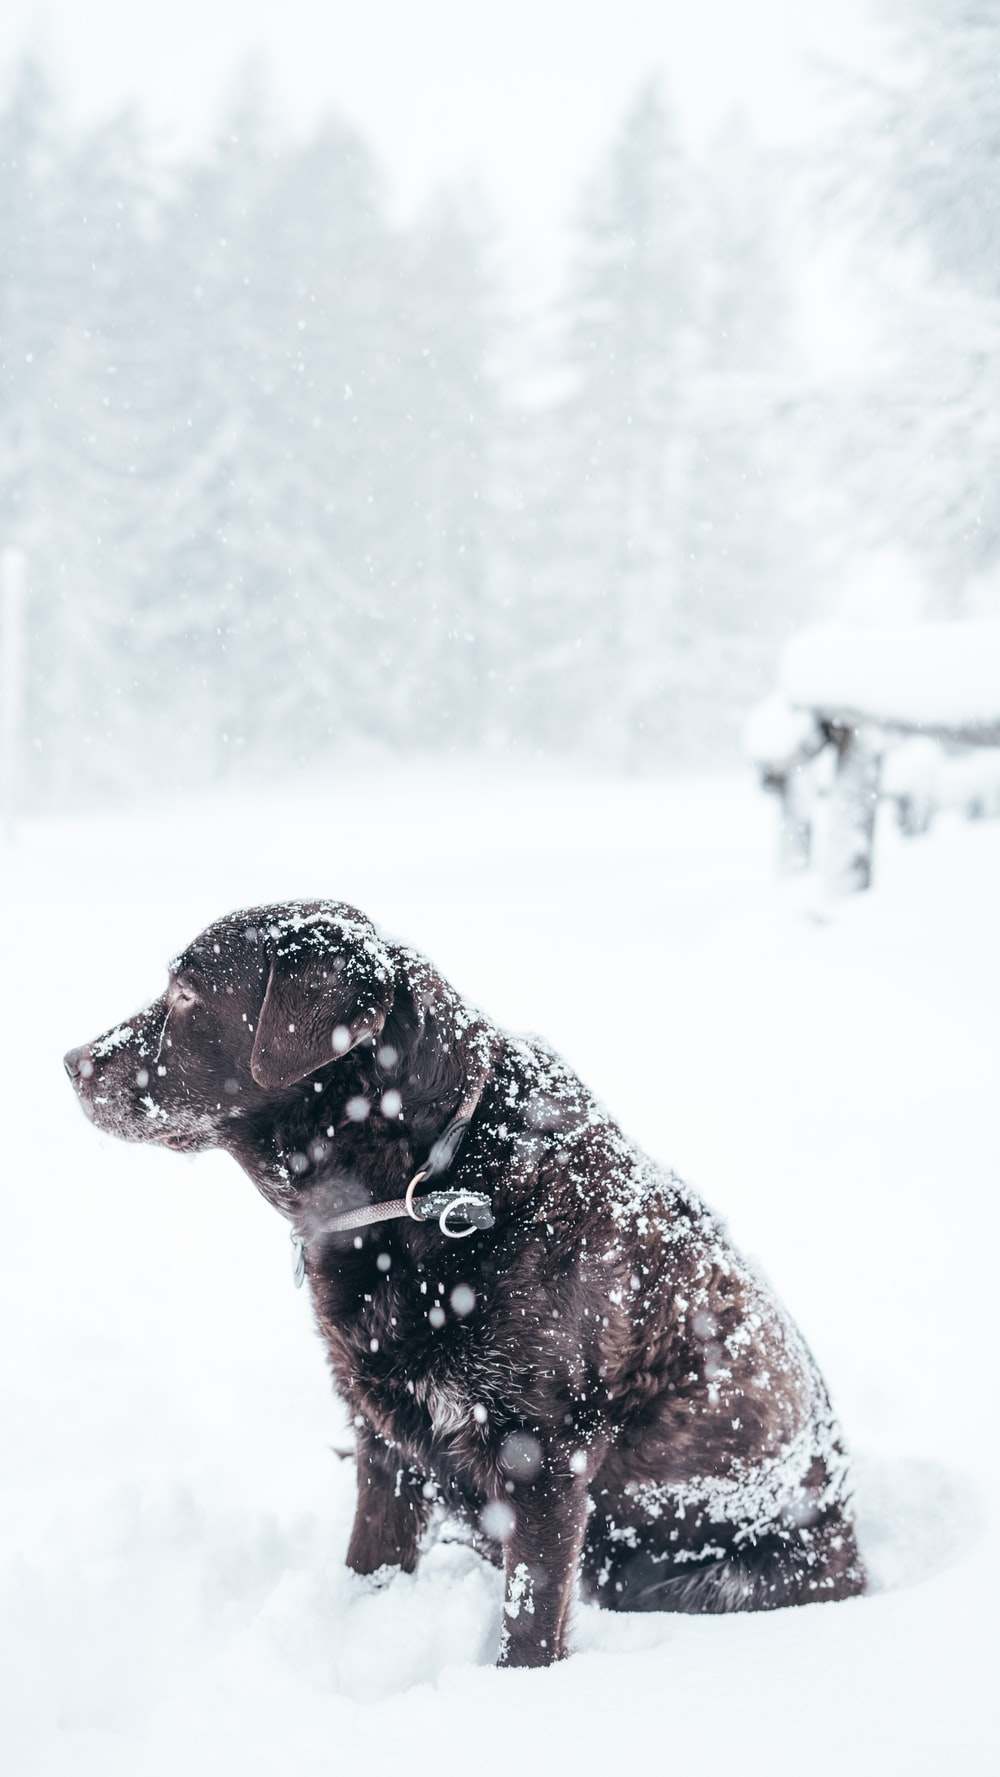 adult chocolate Labrador retriever sitting outside with snow